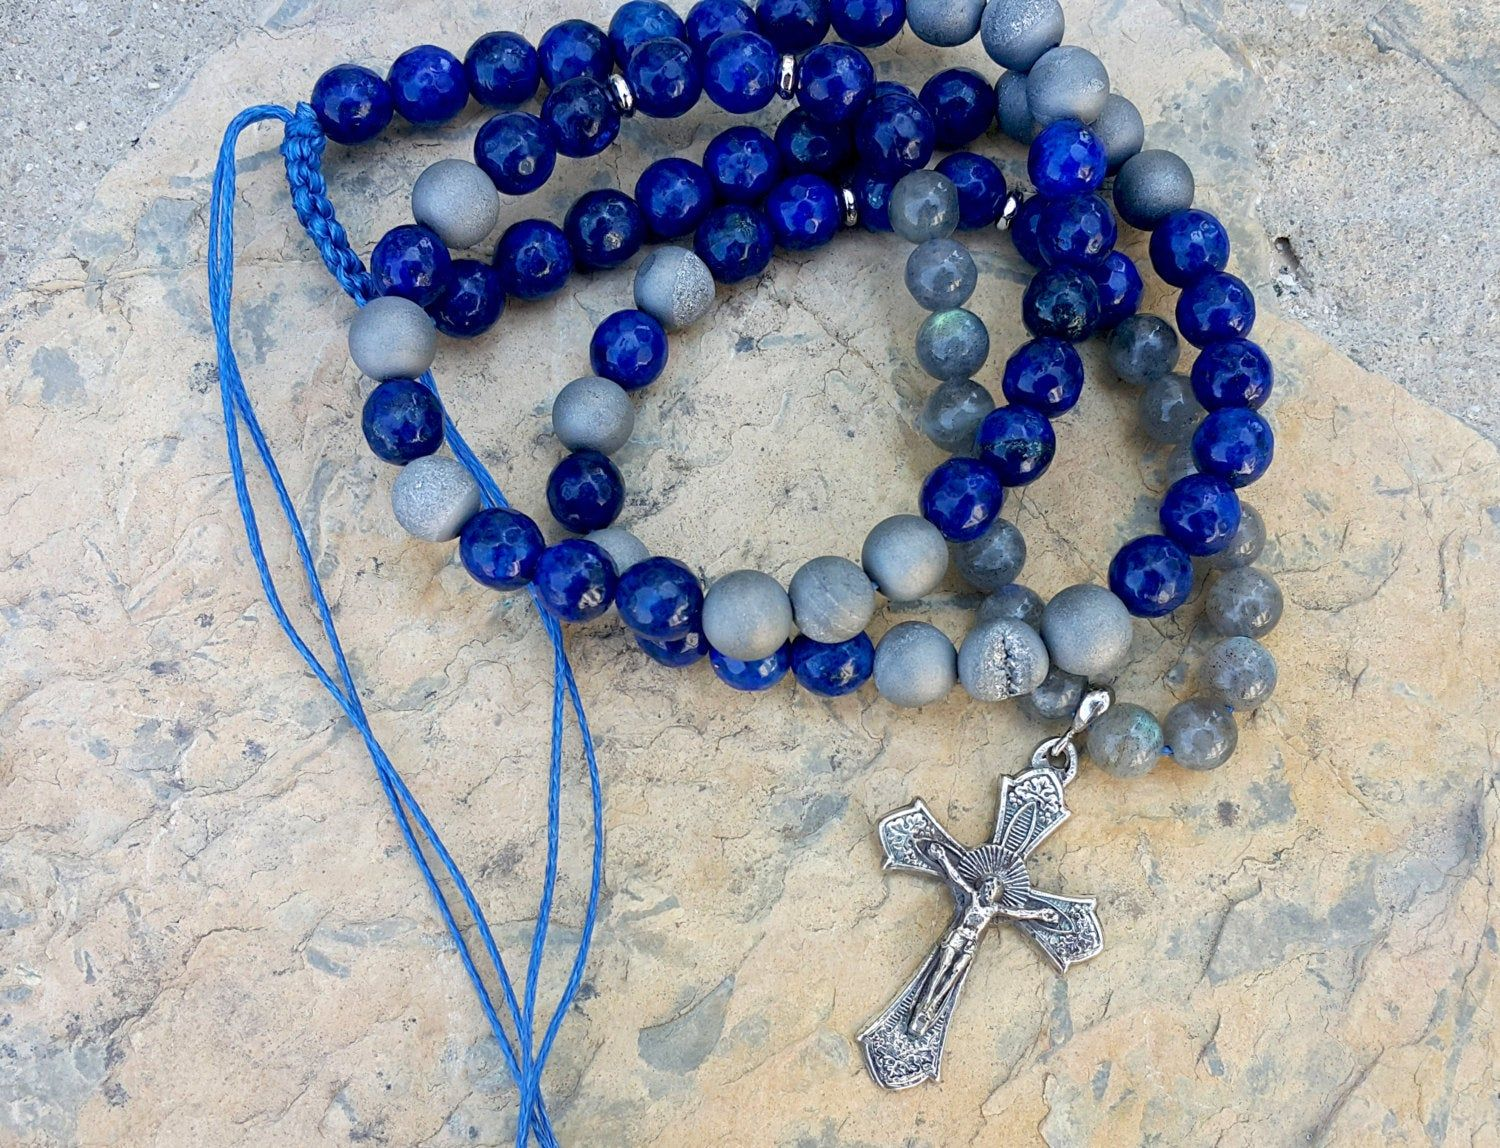 Christian Gifts Men Necklace  Sterling Silver Cross Beaded Necklace Catholic Rosary Lapis Labradorite Geode Metallic Agate Bead Necklace #catholicrosaries